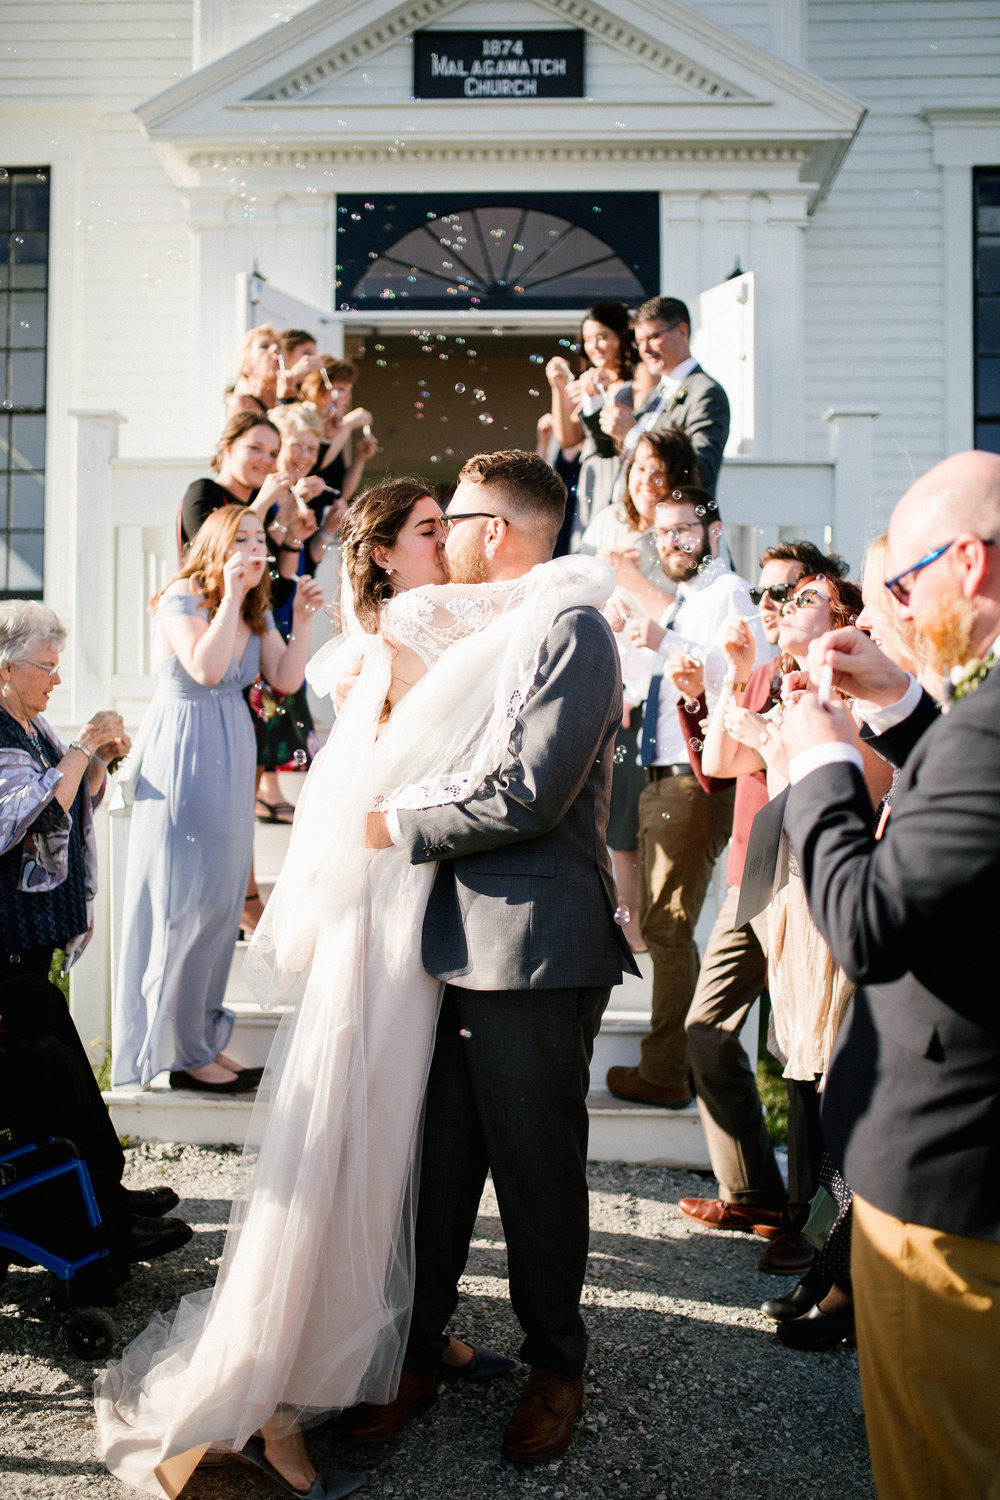 Bubble exit from an intimate wedding ceremony in Nova Scotia